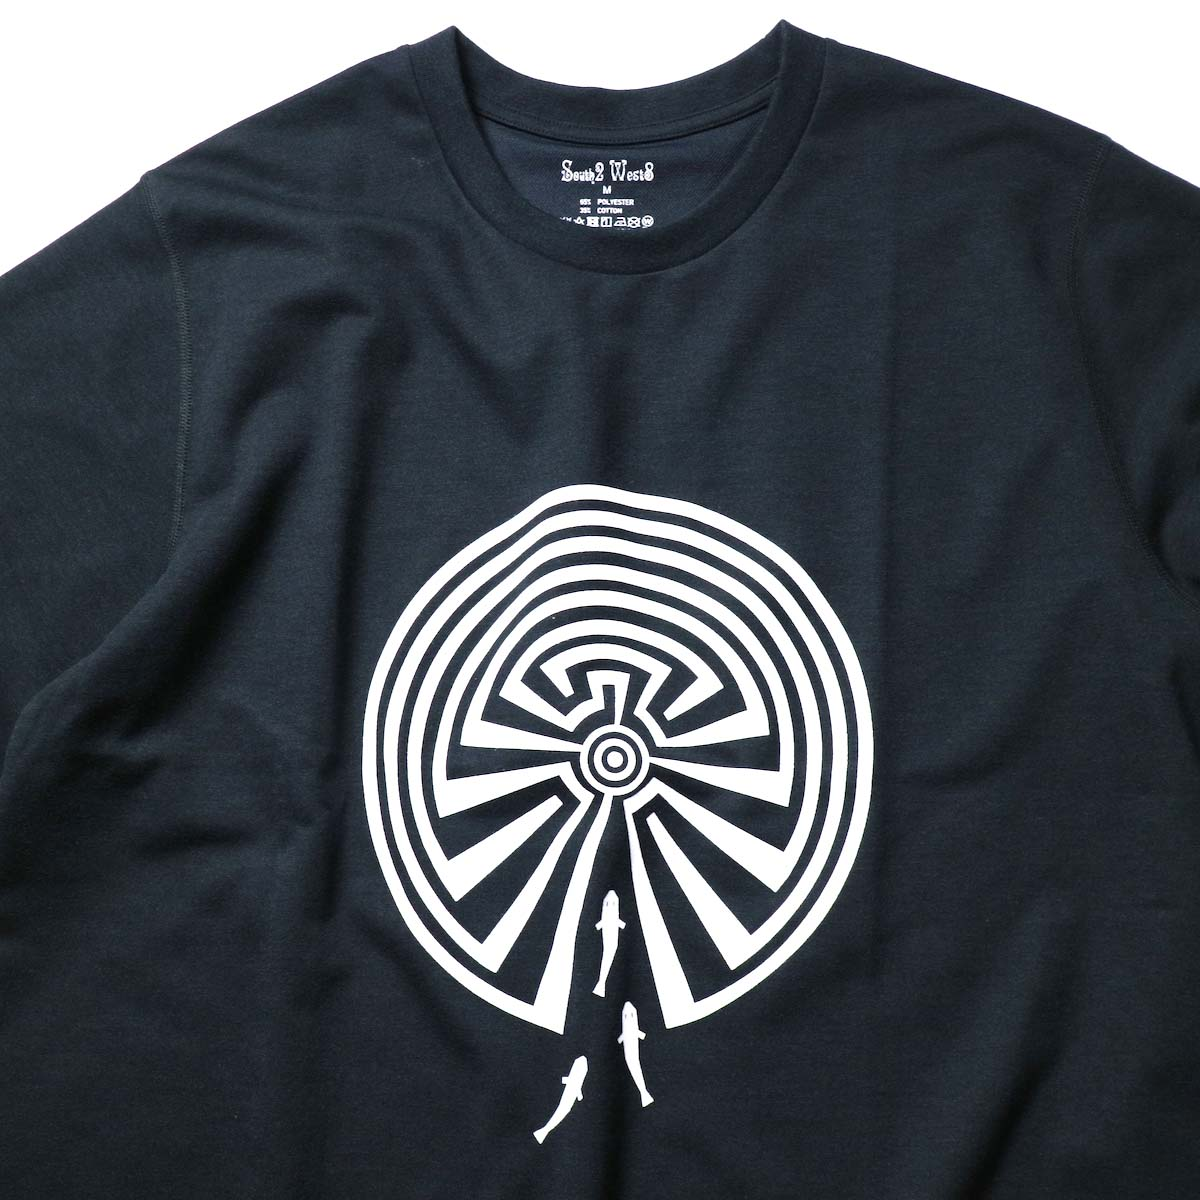 South2 West8 / S/S Crew Neck Tee -Maze (Black)プリント